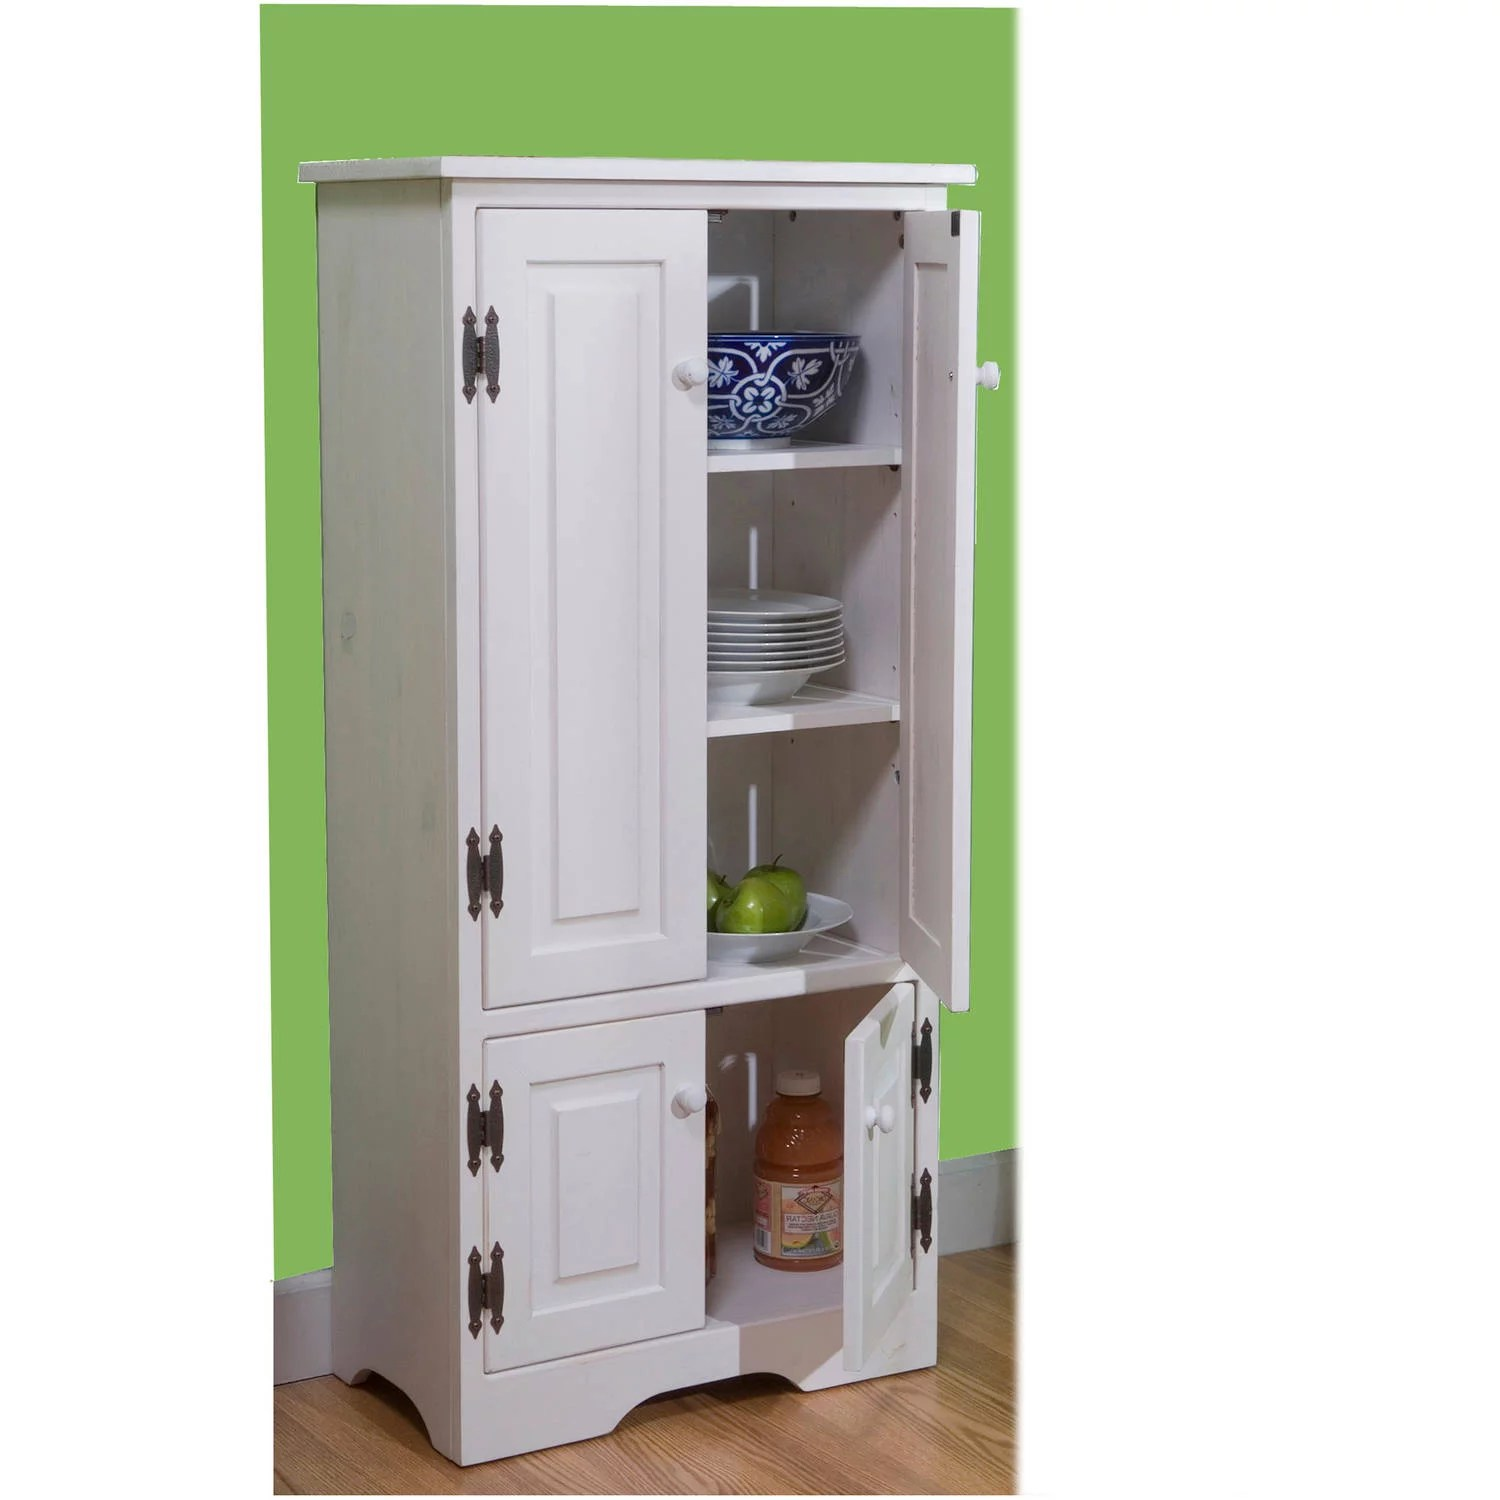 Tall Pantry Cabinet For Kitchen Tall Kitchen Pantry Cabinet Furniture Tracksbrewpubbramptoncom